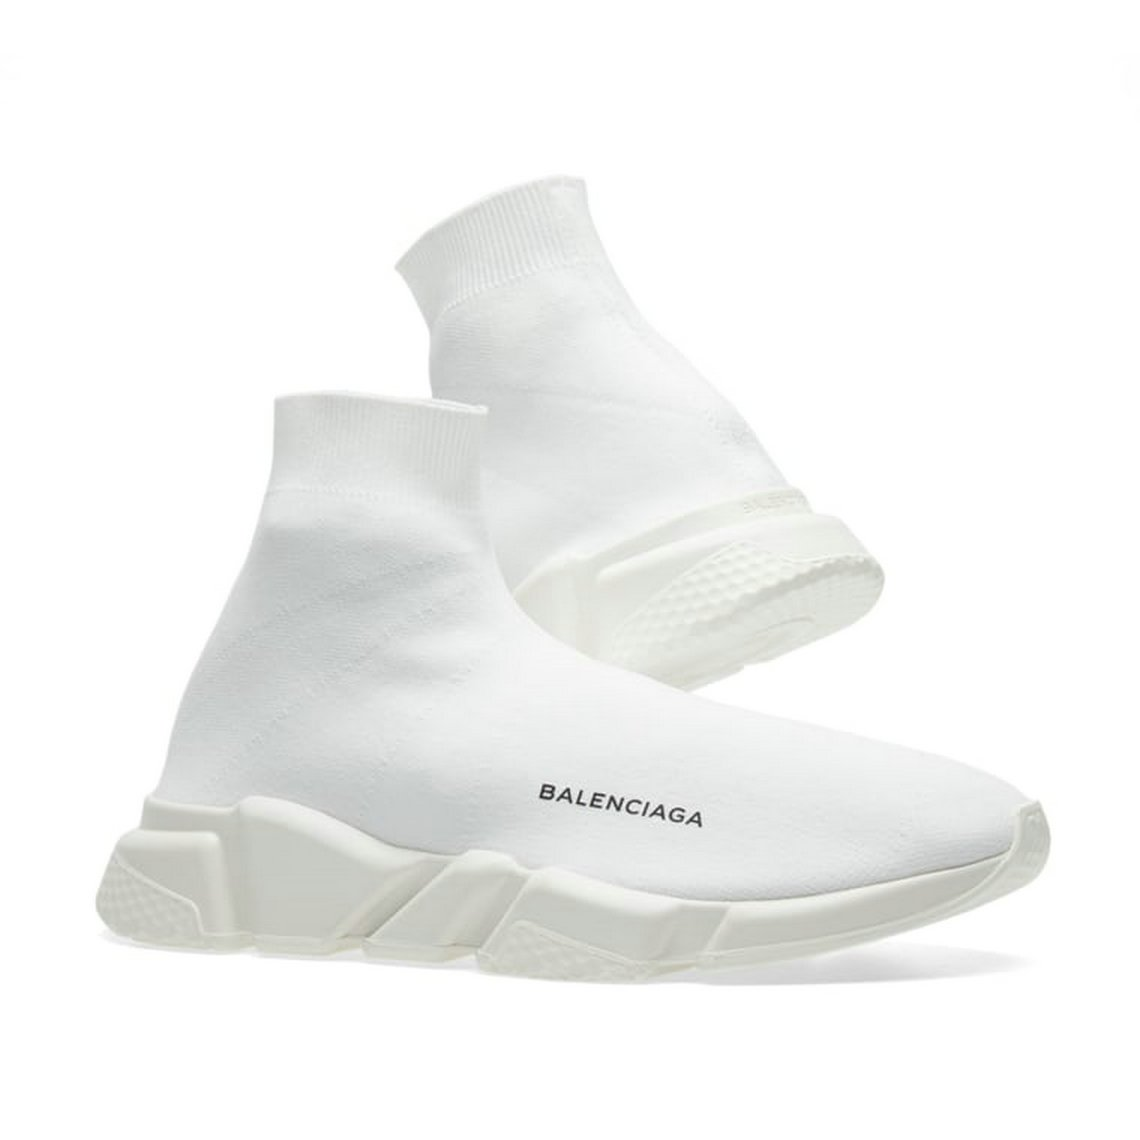 0786e8607 TOPSHOD Unisex Mens Womens Balenciaga Speed Trainer Sneaker White: Amazon.co .uk: Shoes & Bags